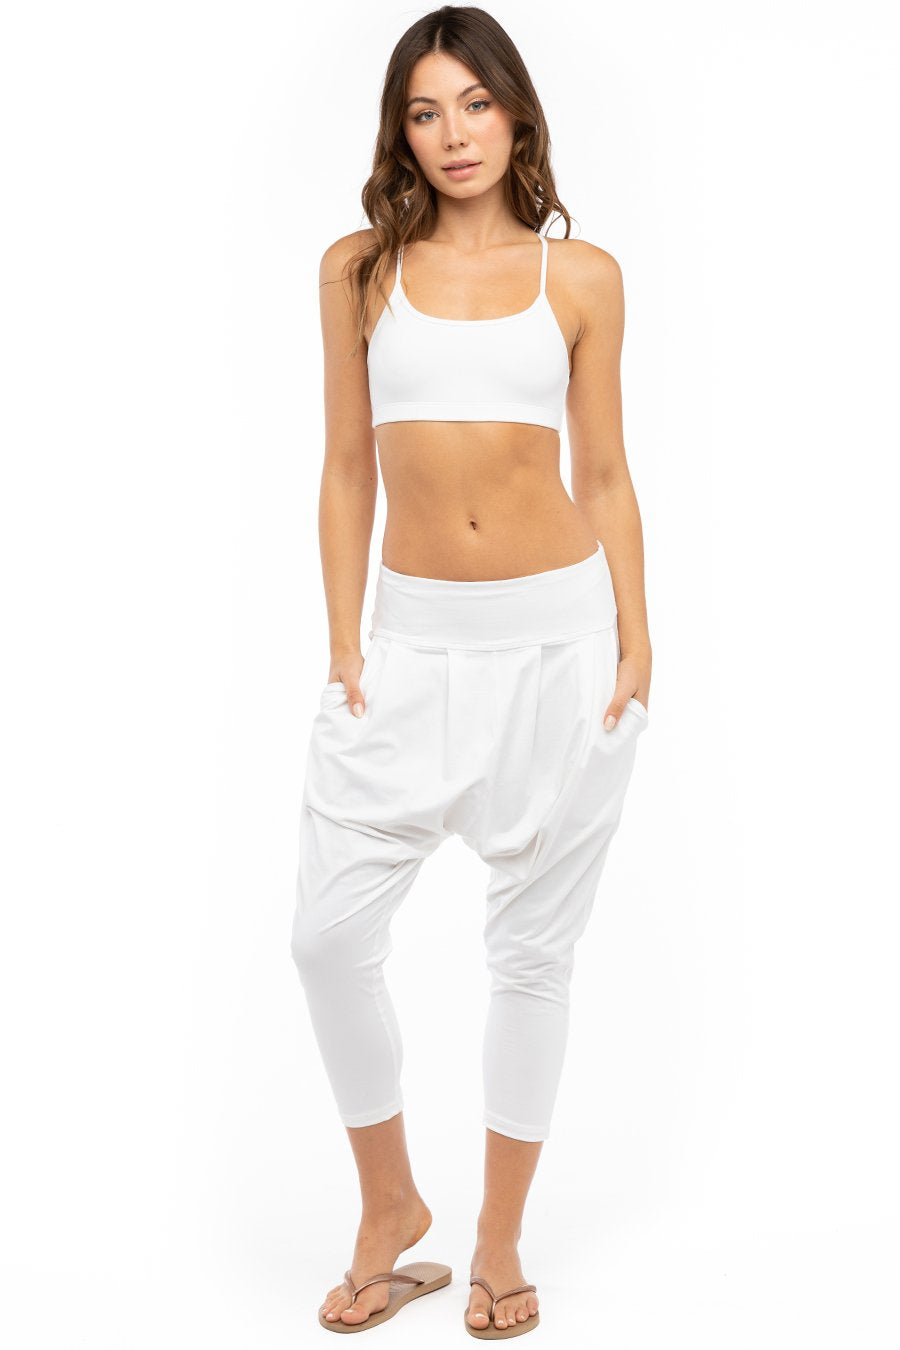 Hard Tail Forever Slouchy Yoga Crop Pants - White - XS